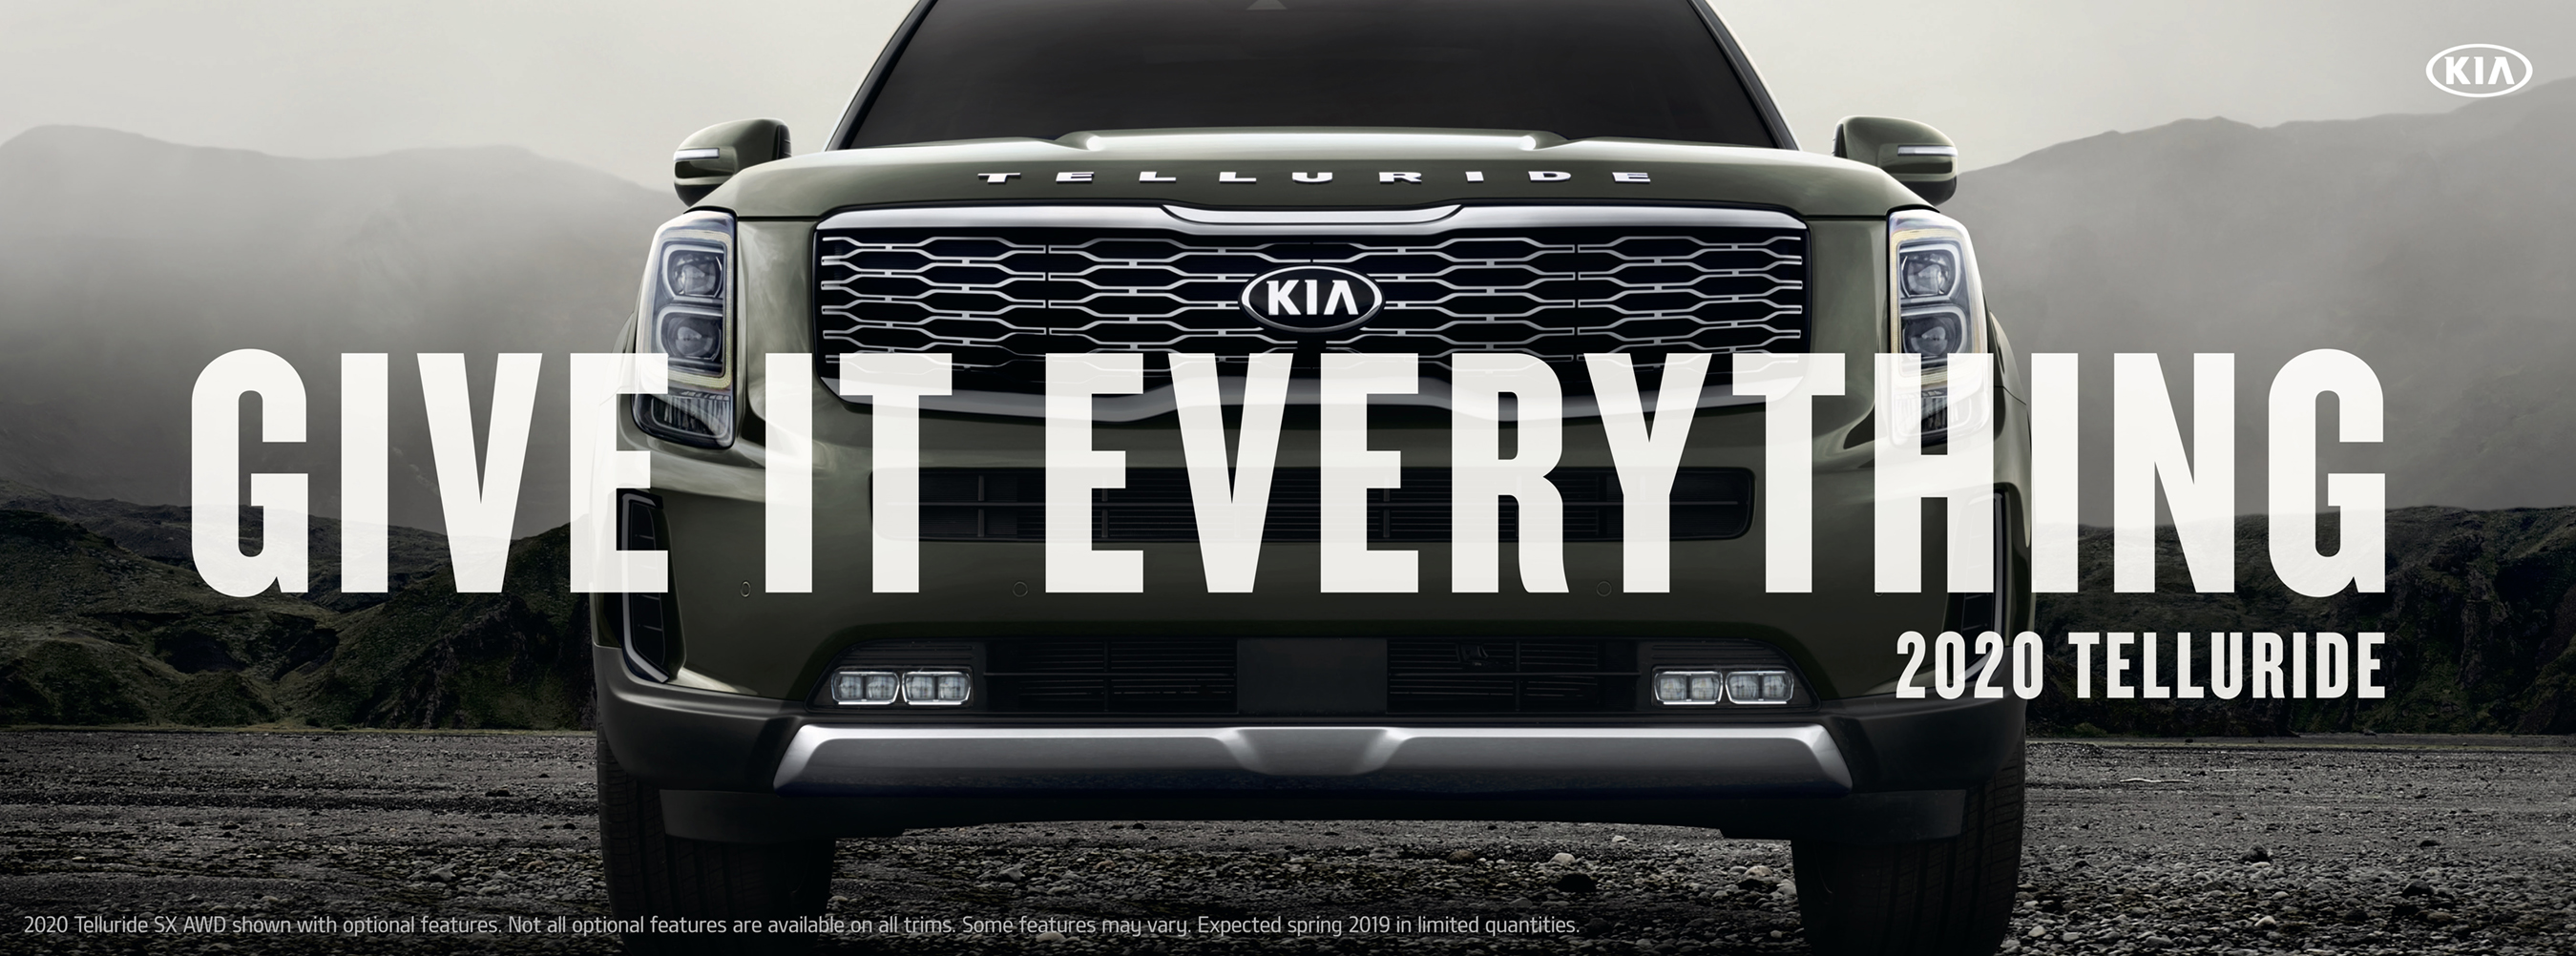 "Kia Motors America Reveals New Brand Personality, ""Give It Everything"", Through 90-Second Super Bowl Ad"